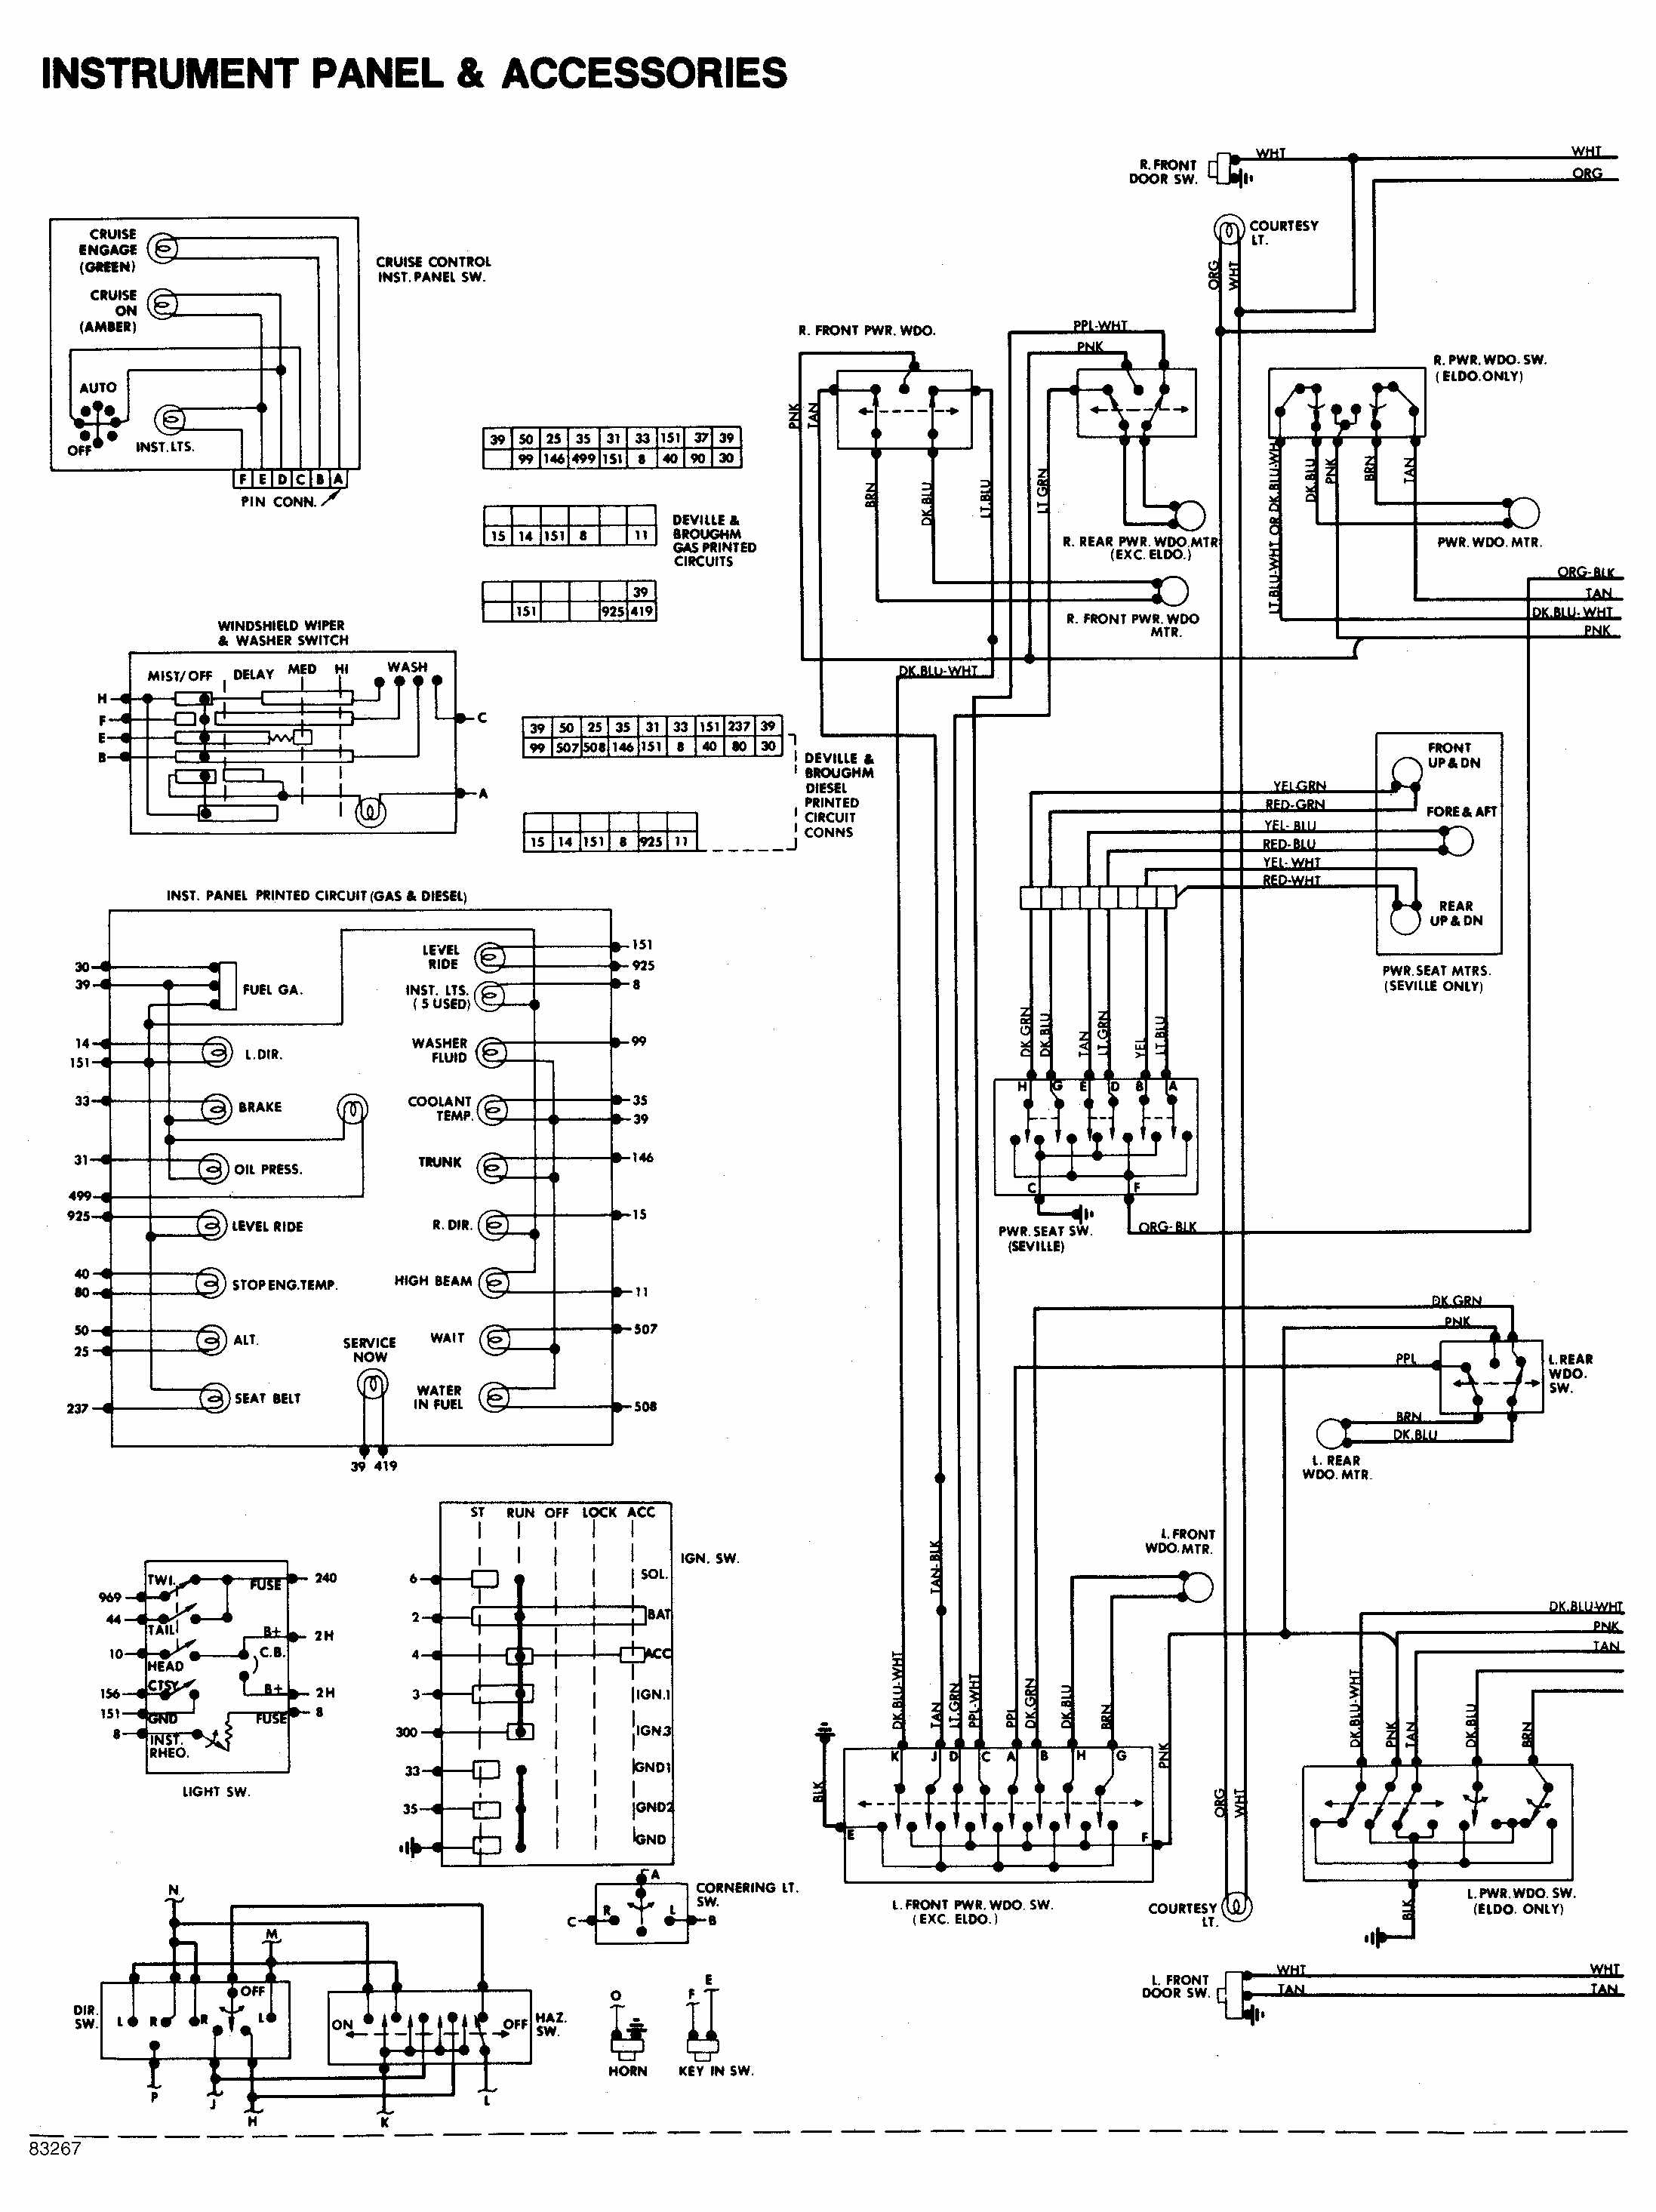 1964 Chevelle Steering Column Wiring Diagram Product Diagrams Corvette Fuse Box Cadillac Free Vehicle U2022 Rh Narfiyanstudio Com 1965 Mustang Power